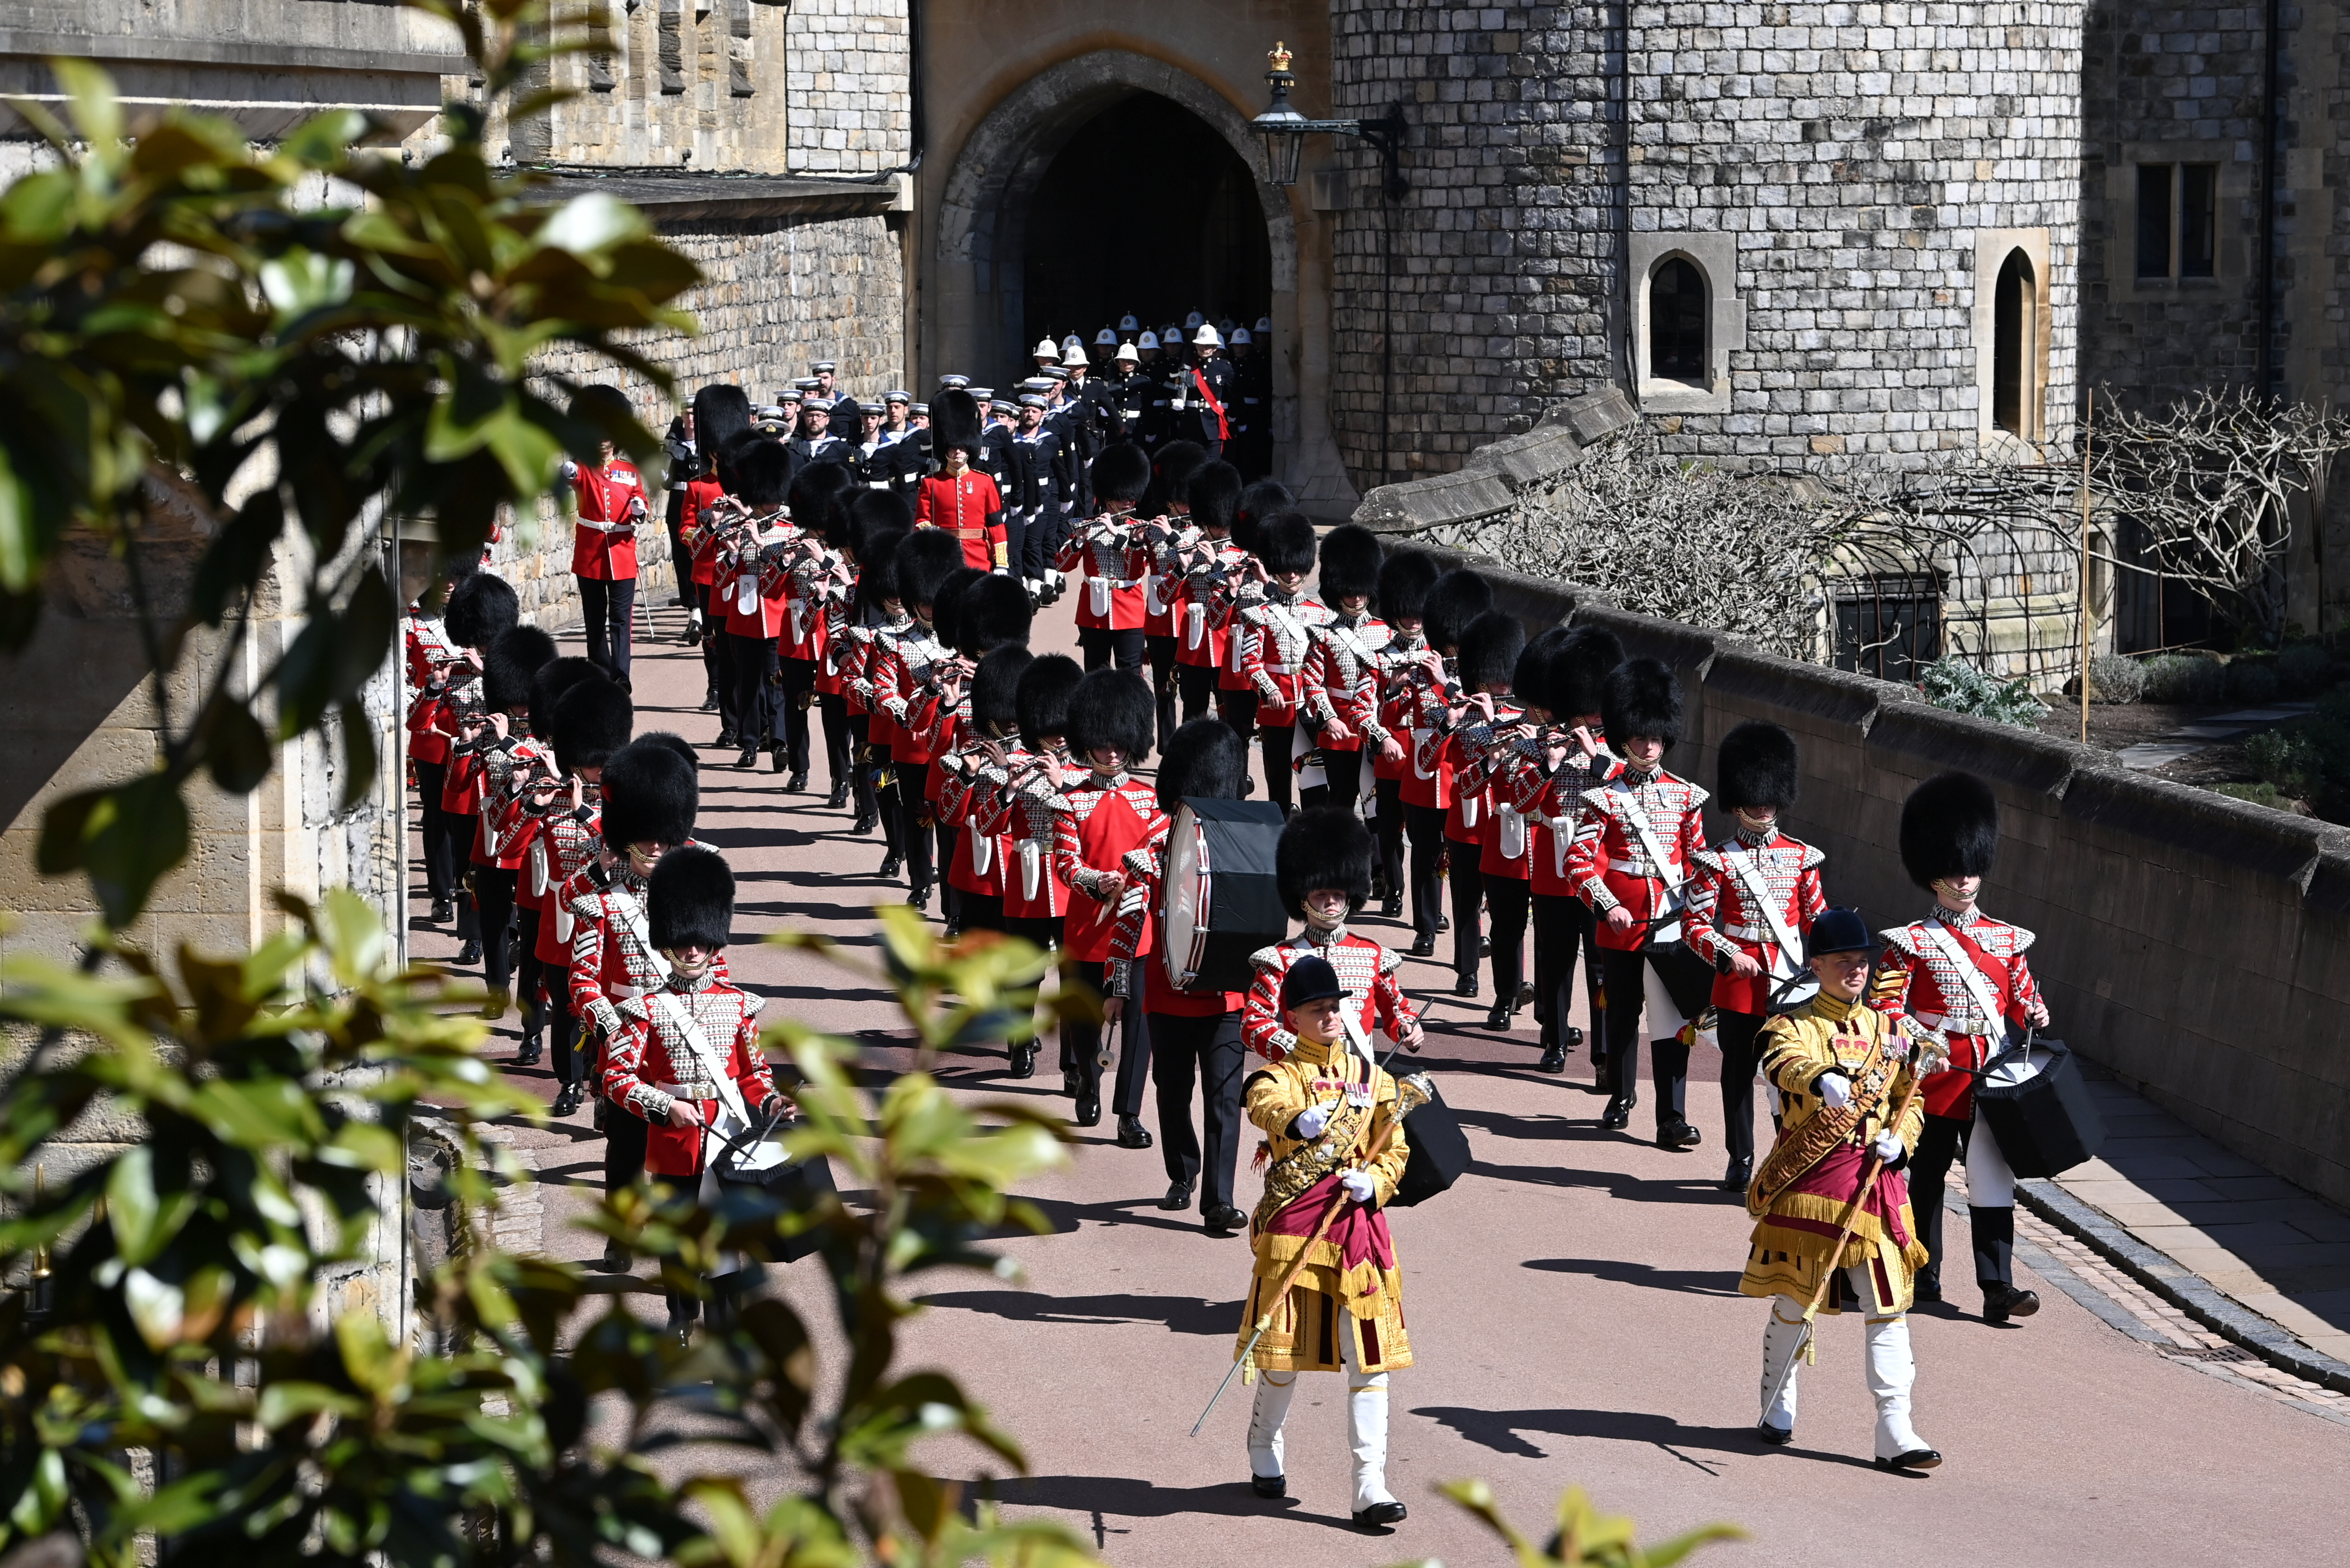 Members of the military march on the grounds of the Windsor Castle as the Royal Standard fag flutters on the day of the funeral of Britain's Prince Philip, husband of Queen Elizabeth, who died at the age of 99, at Windsor Castle in Windsor, Britain, April 17, 2021. Leon Neal/Pool via REUTERS